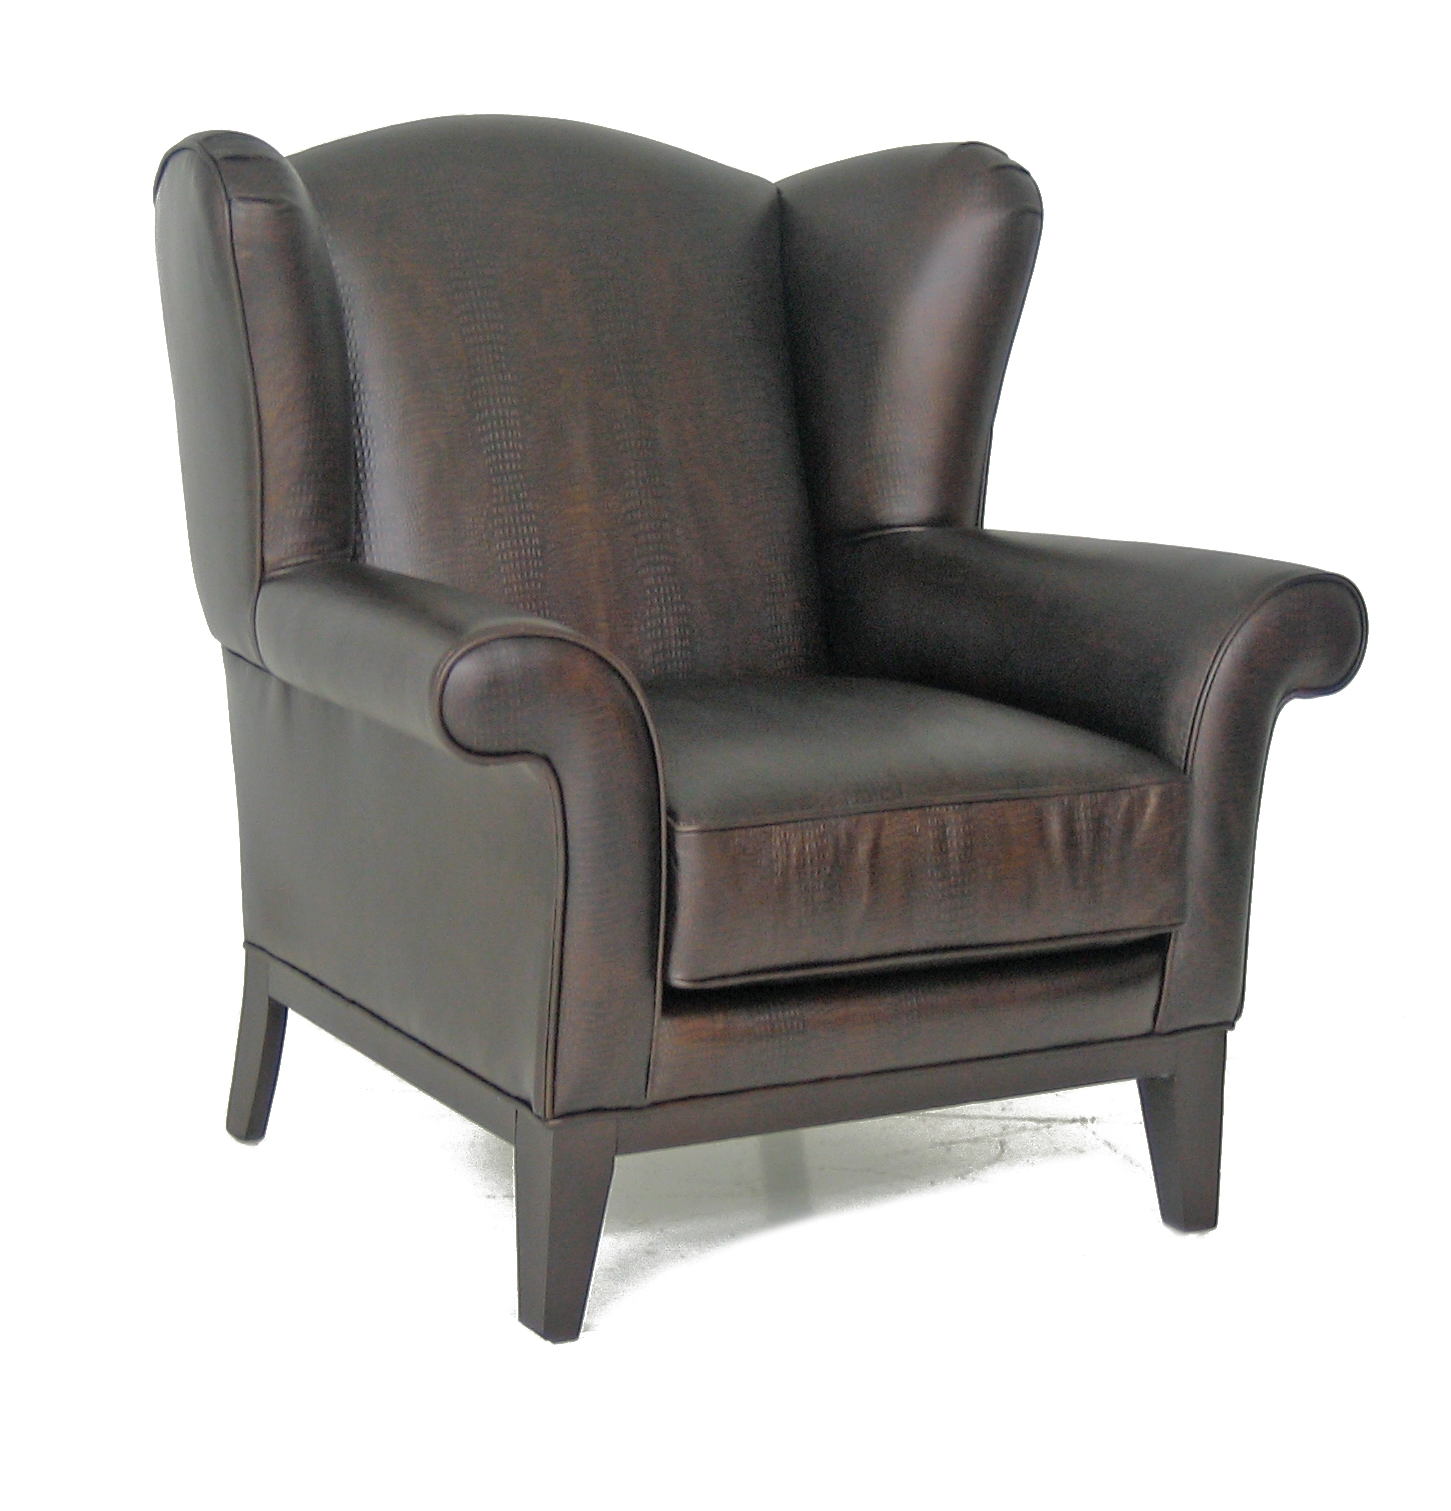 Leather Sofas Chairs In Sofas And Chairs (View 11 of 15)